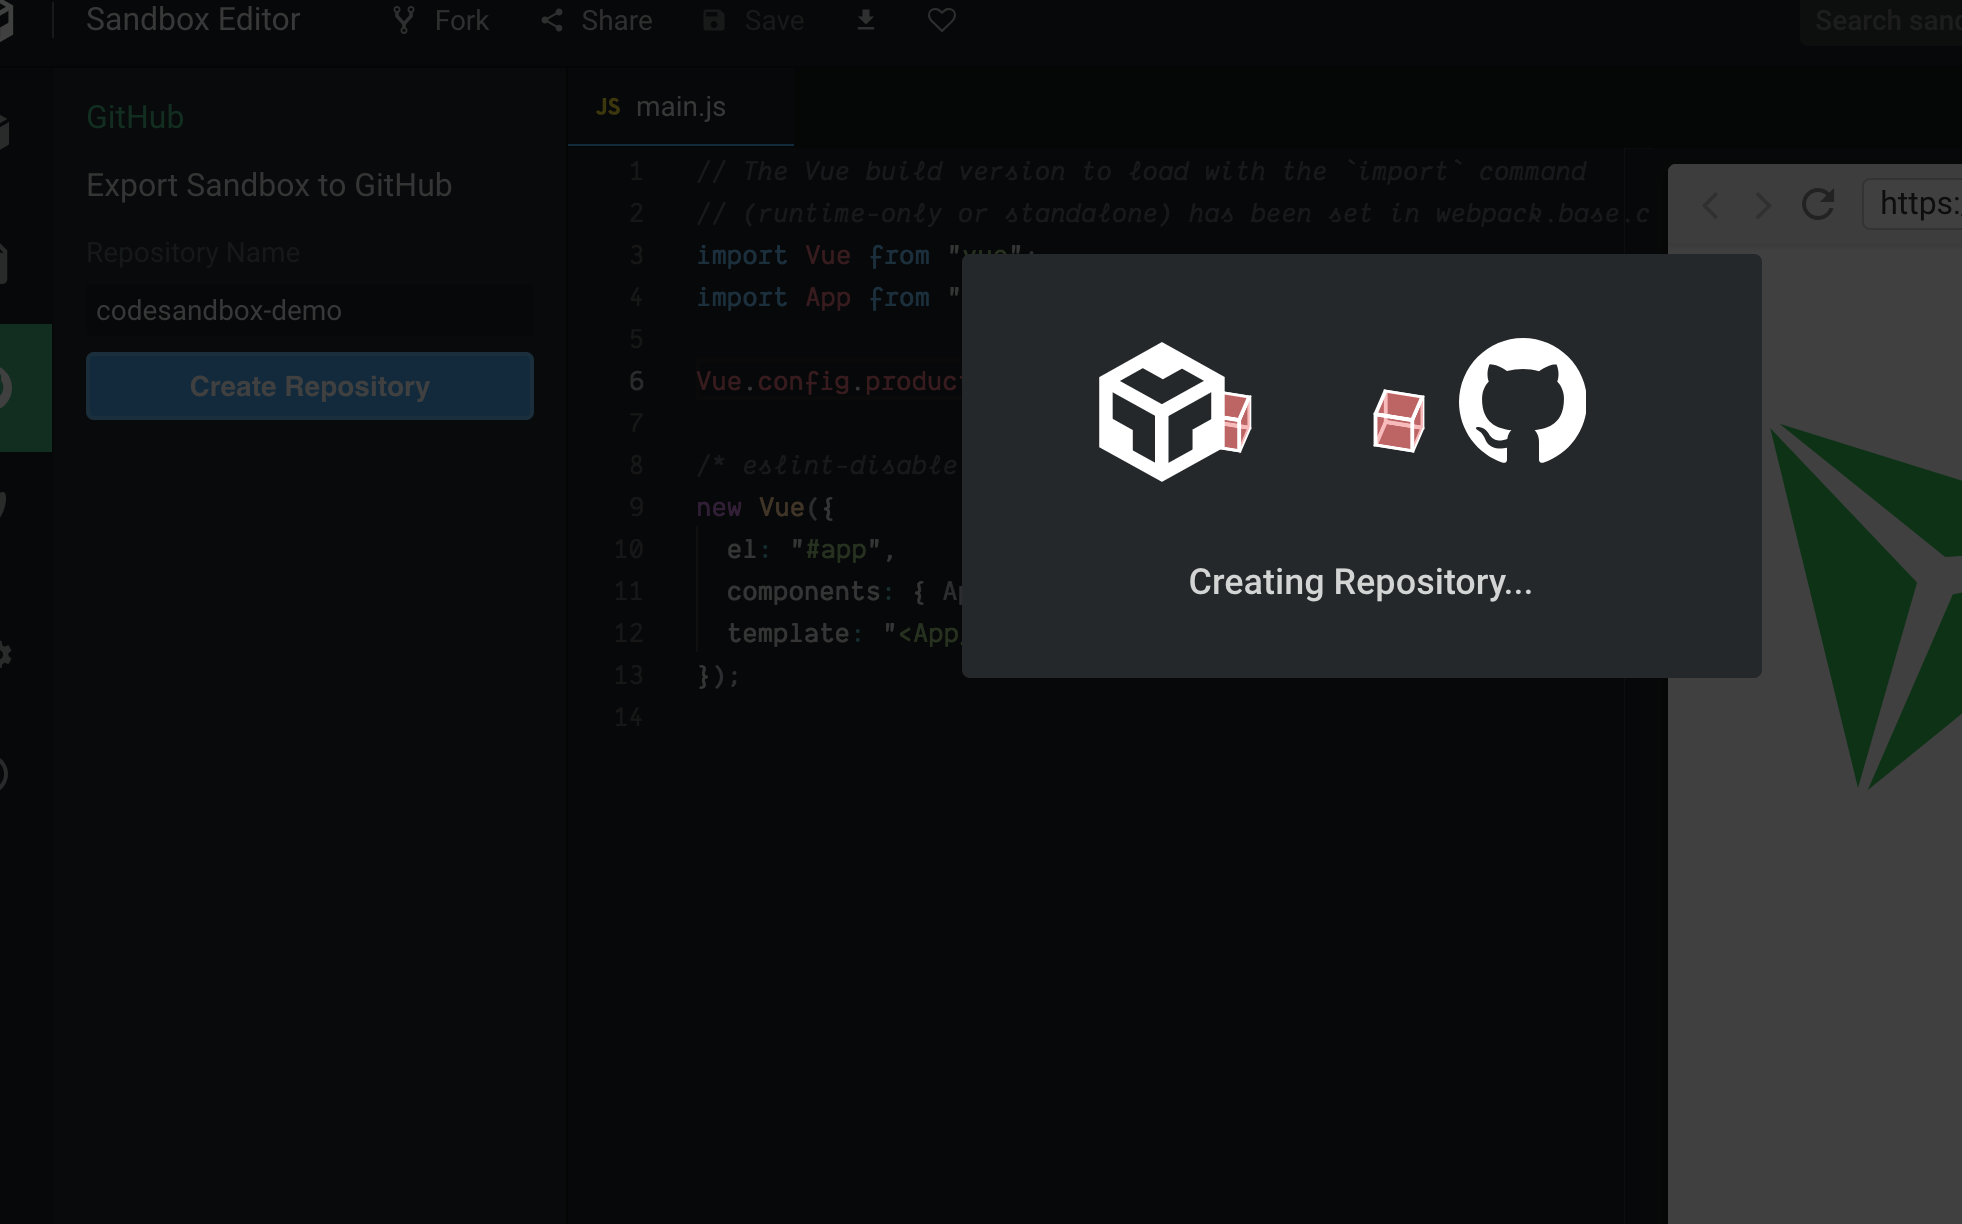 Screenshot showing the creating of a Github repository from within Codesandbox